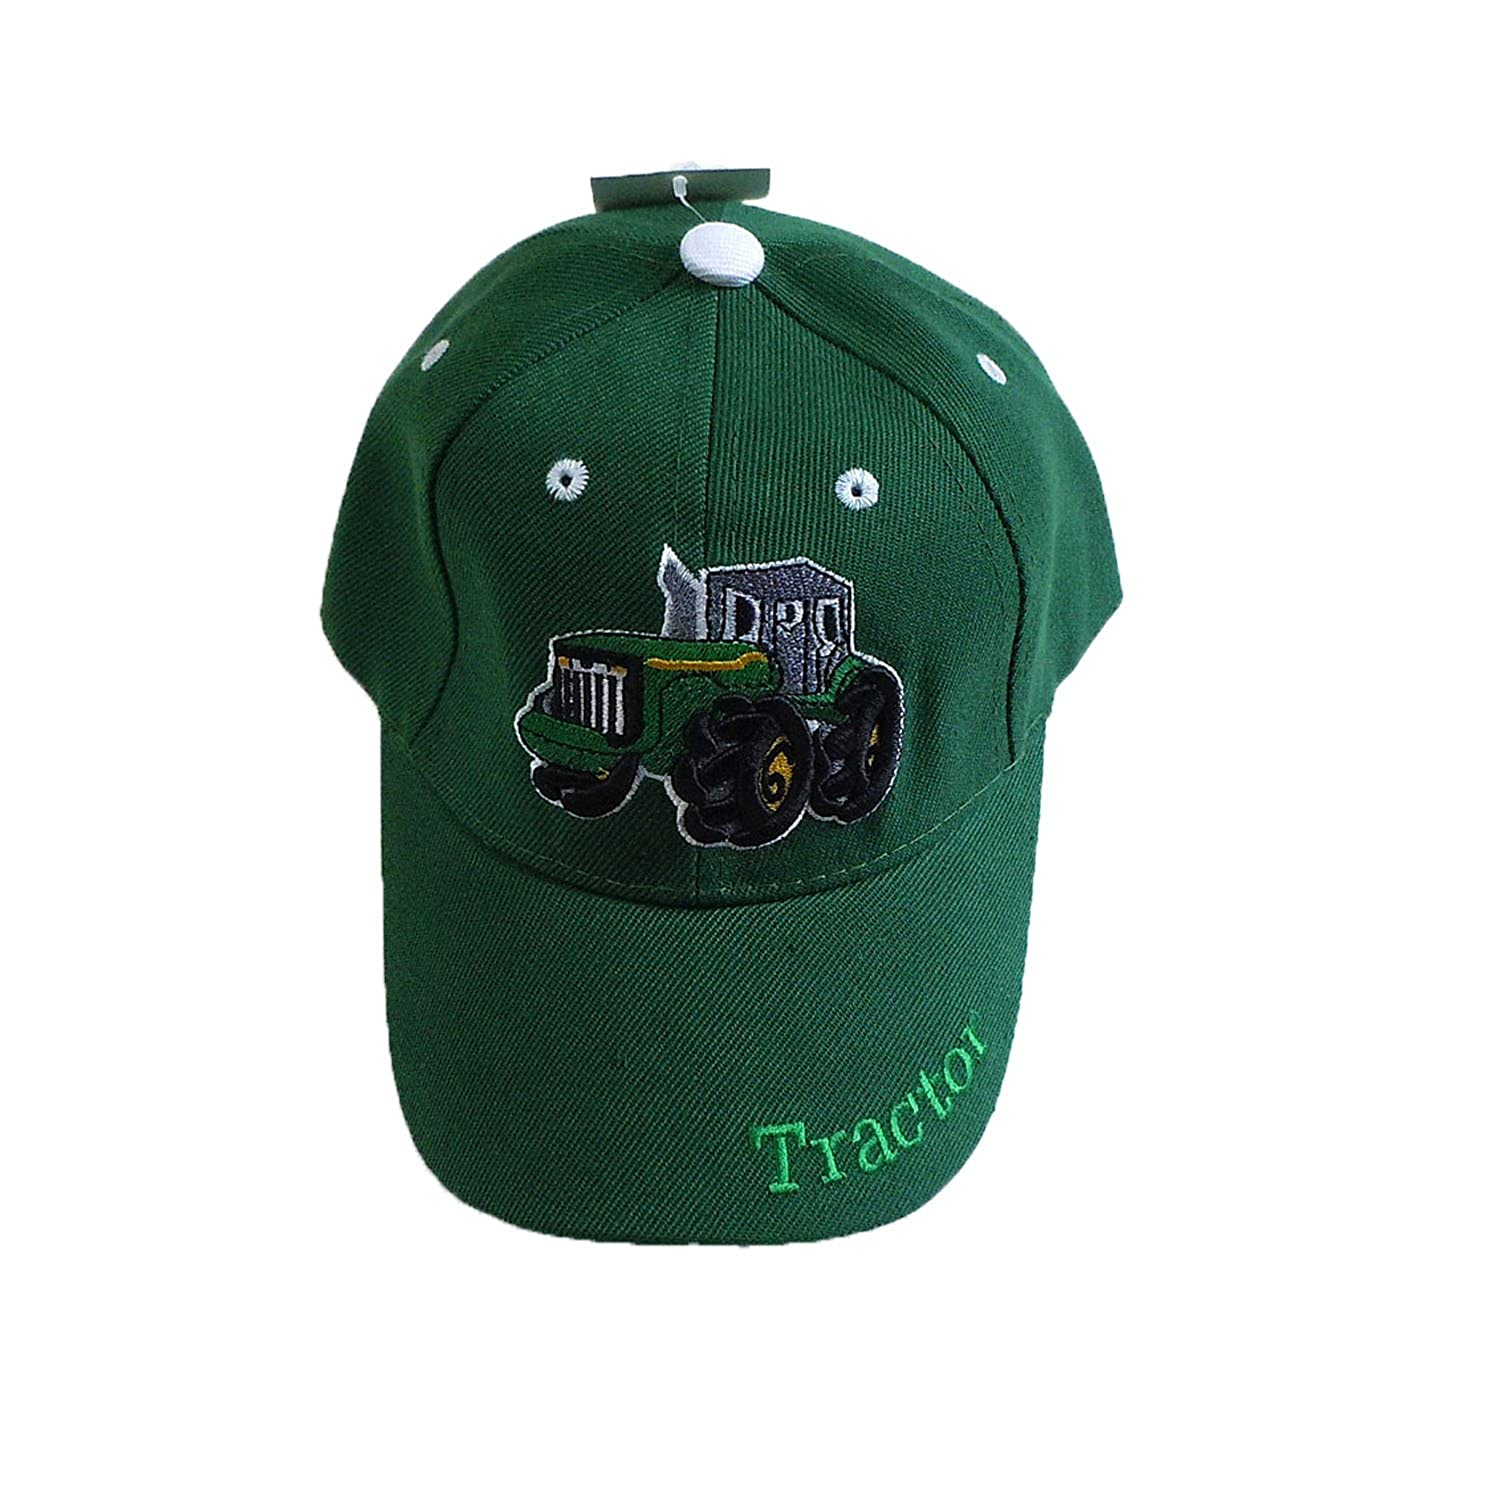 Amazon.com: Childrens Embroidered Tractor Baseball Cap, Available in 4 Colors (Black): Clothing